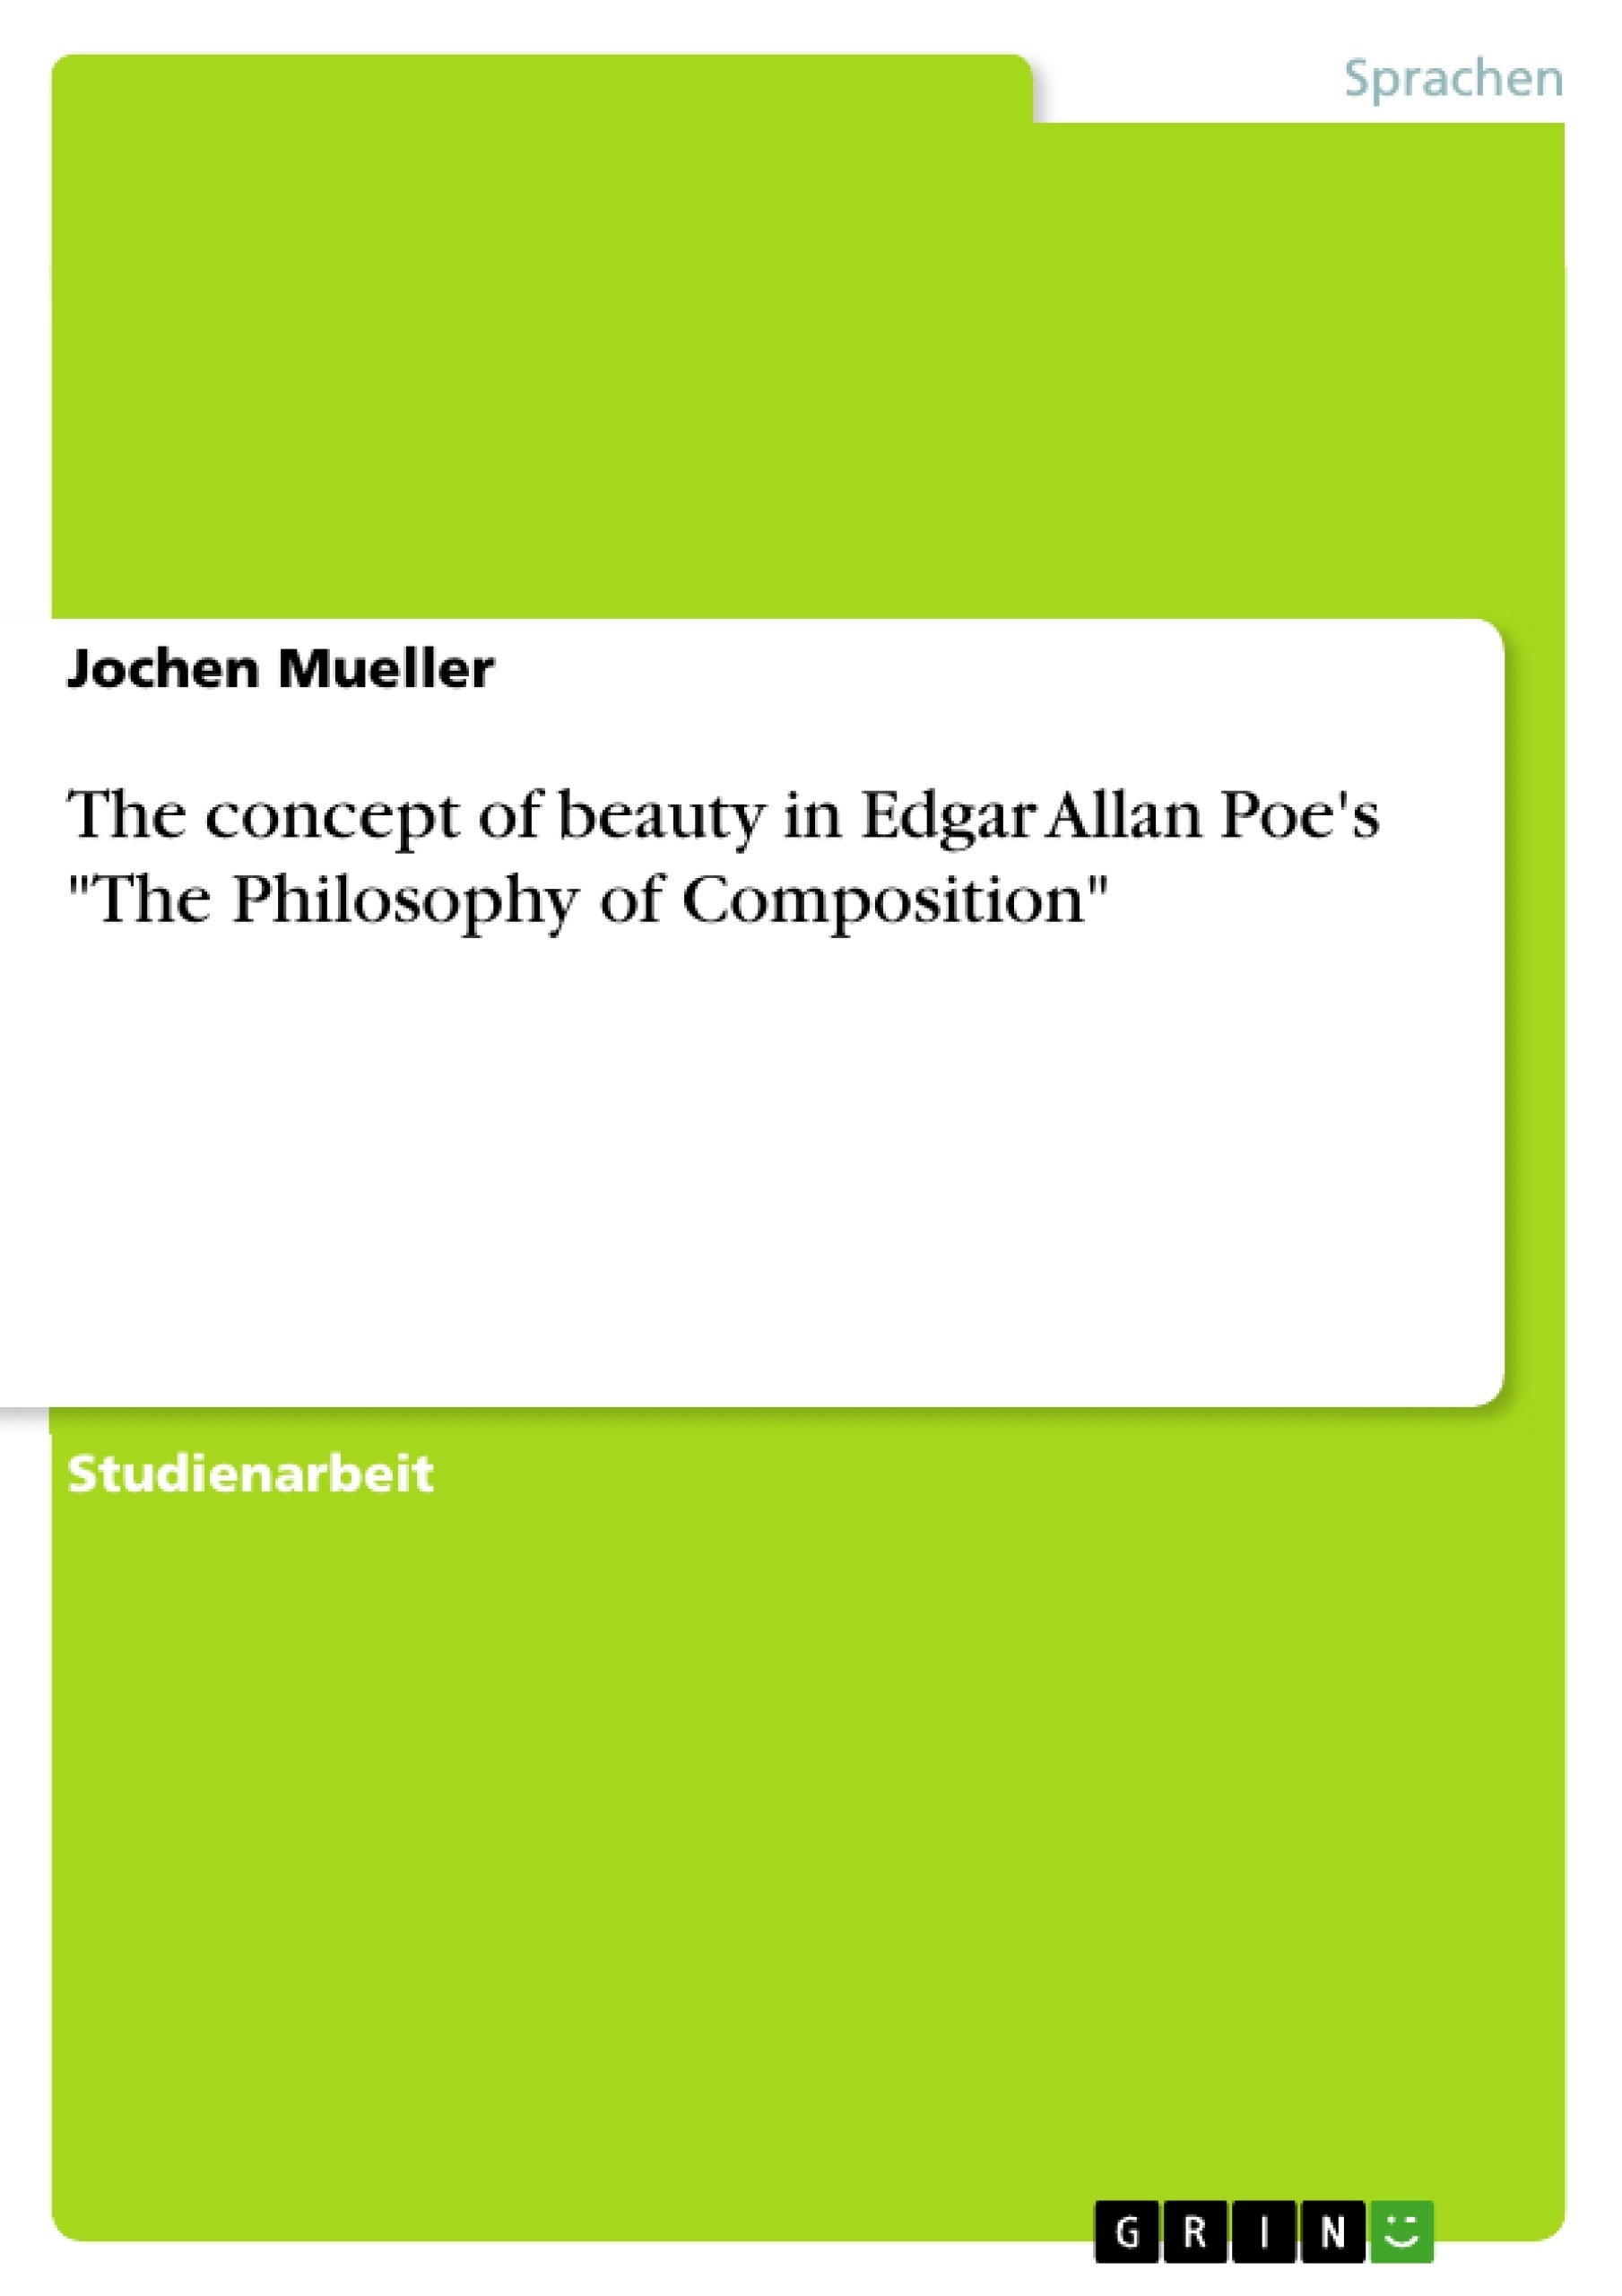 the concept of beauty in edgar allan poe s the philosophy of the concept of beauty in edgar allan poe s the philosophy of masterarbeit hausarbeit bachelorarbeit veratildeparaffentlichen